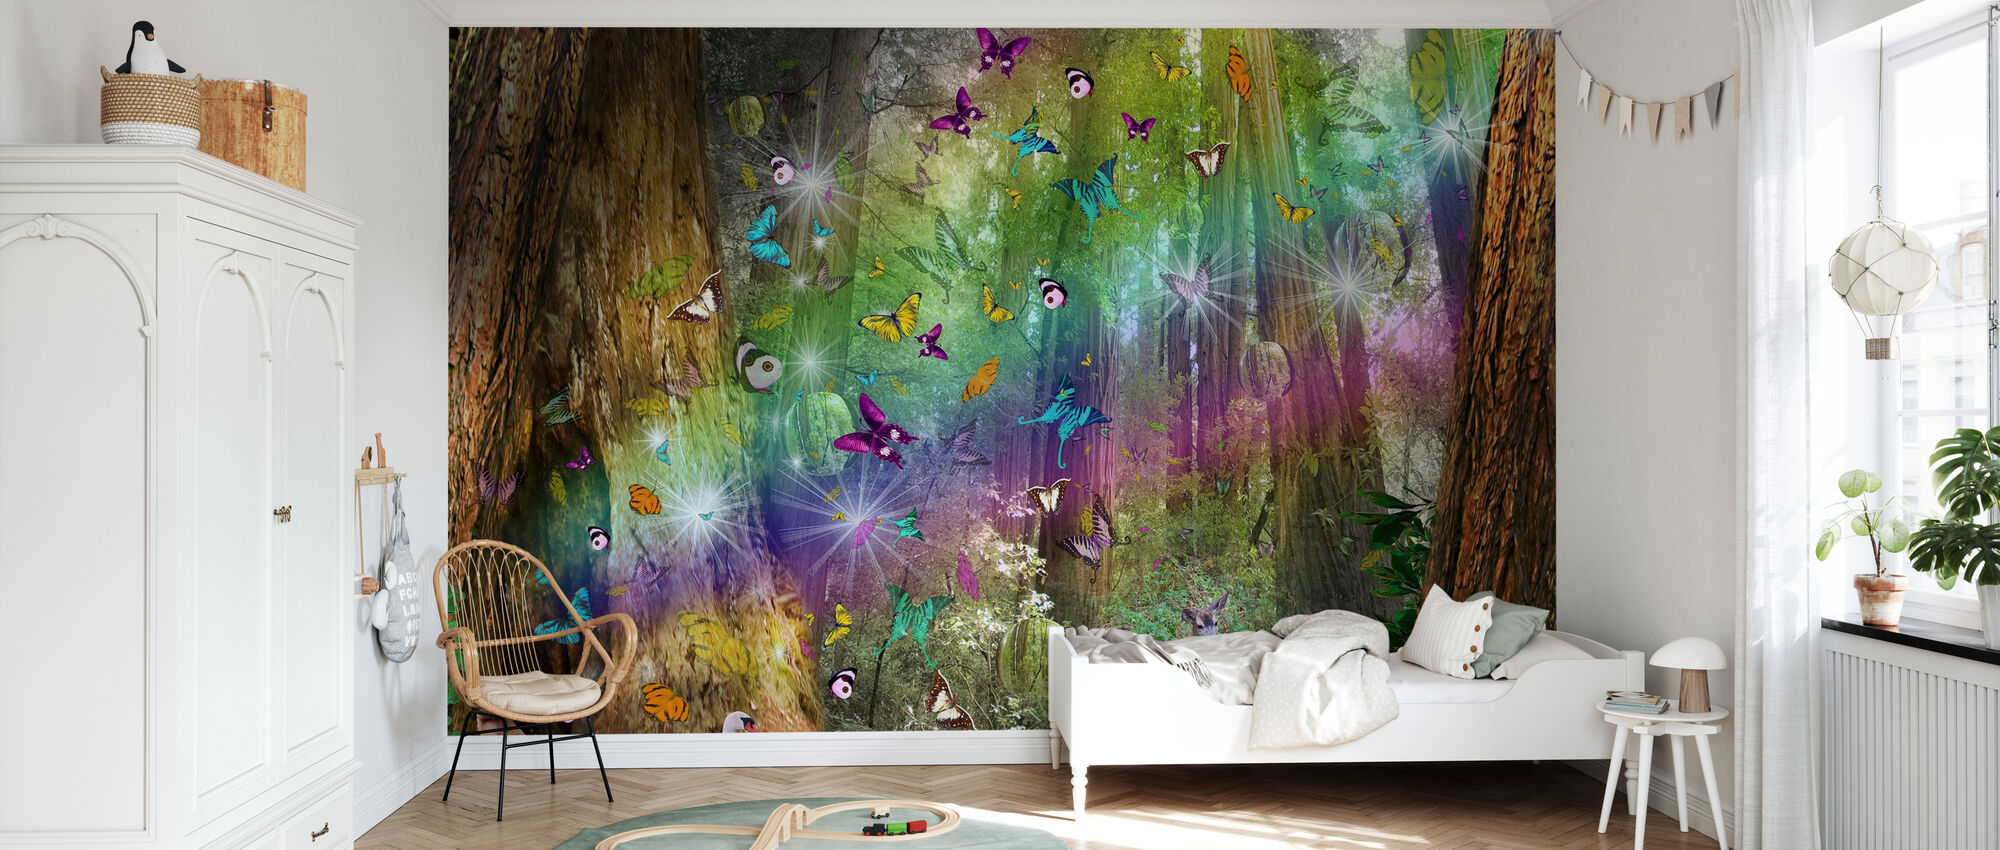 Red Wood Paradise - Wallpaper - Kids Room